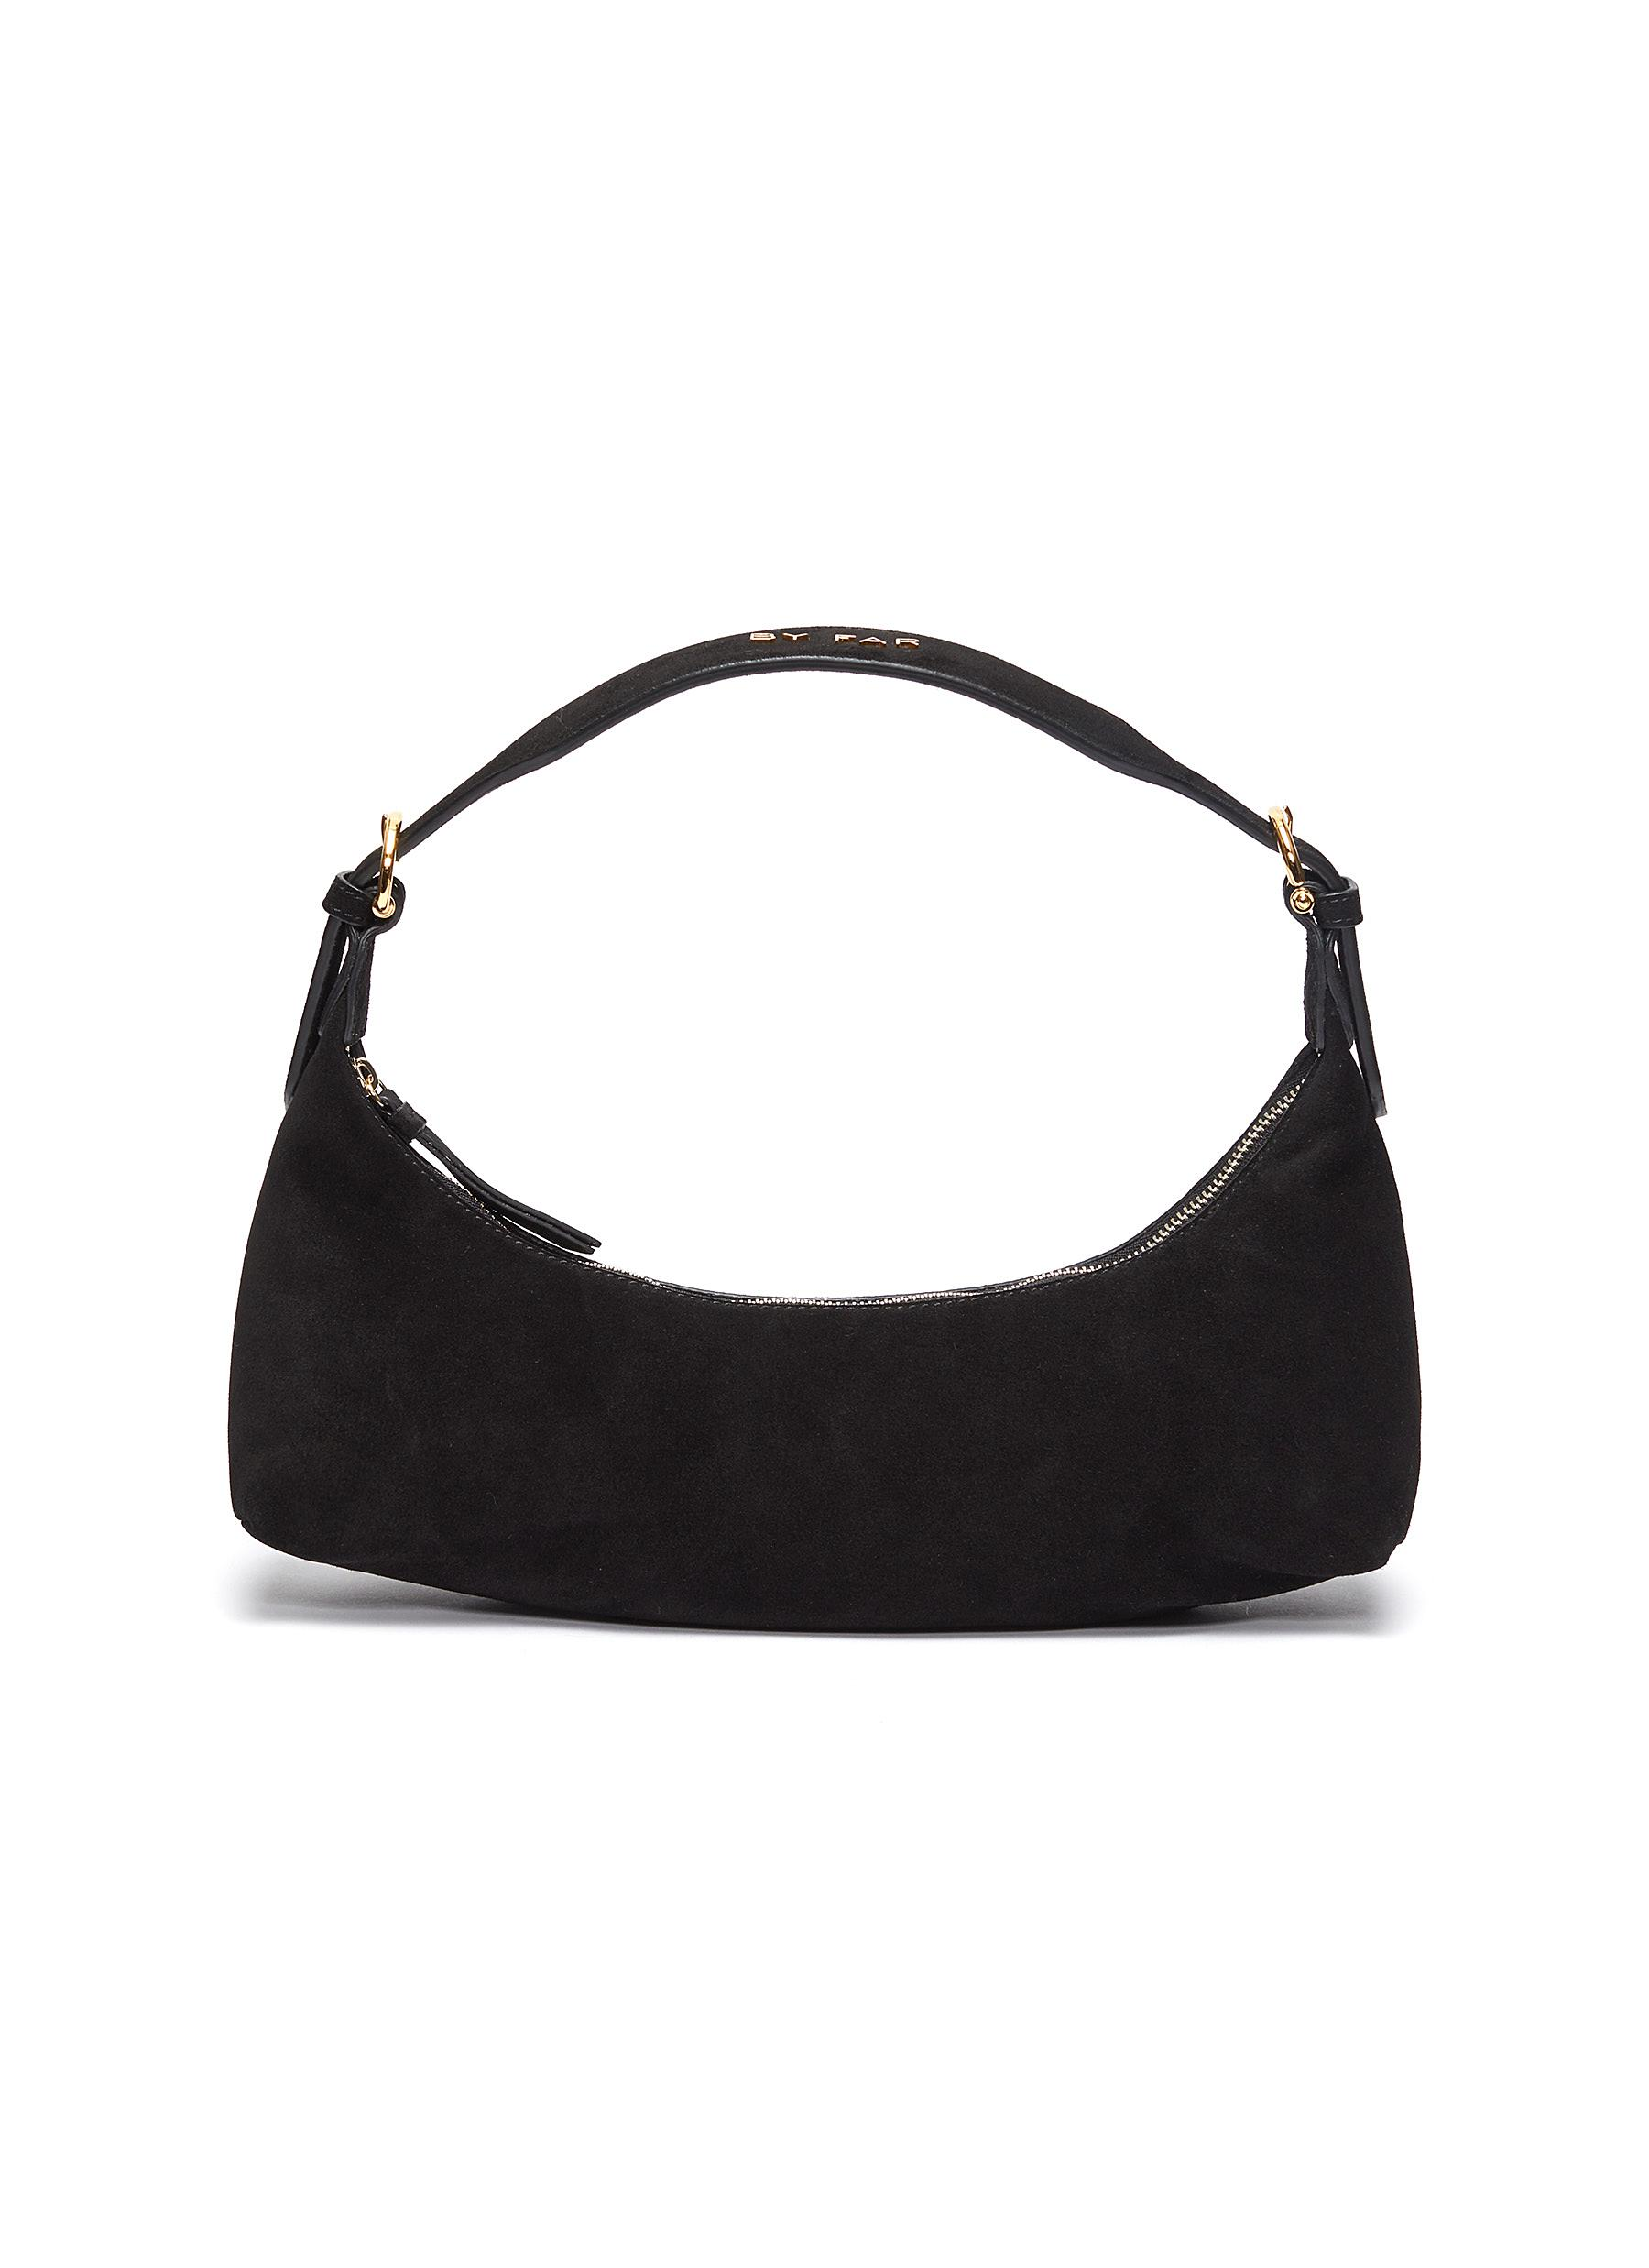 'Mara' suede leather baguette shoulder bag